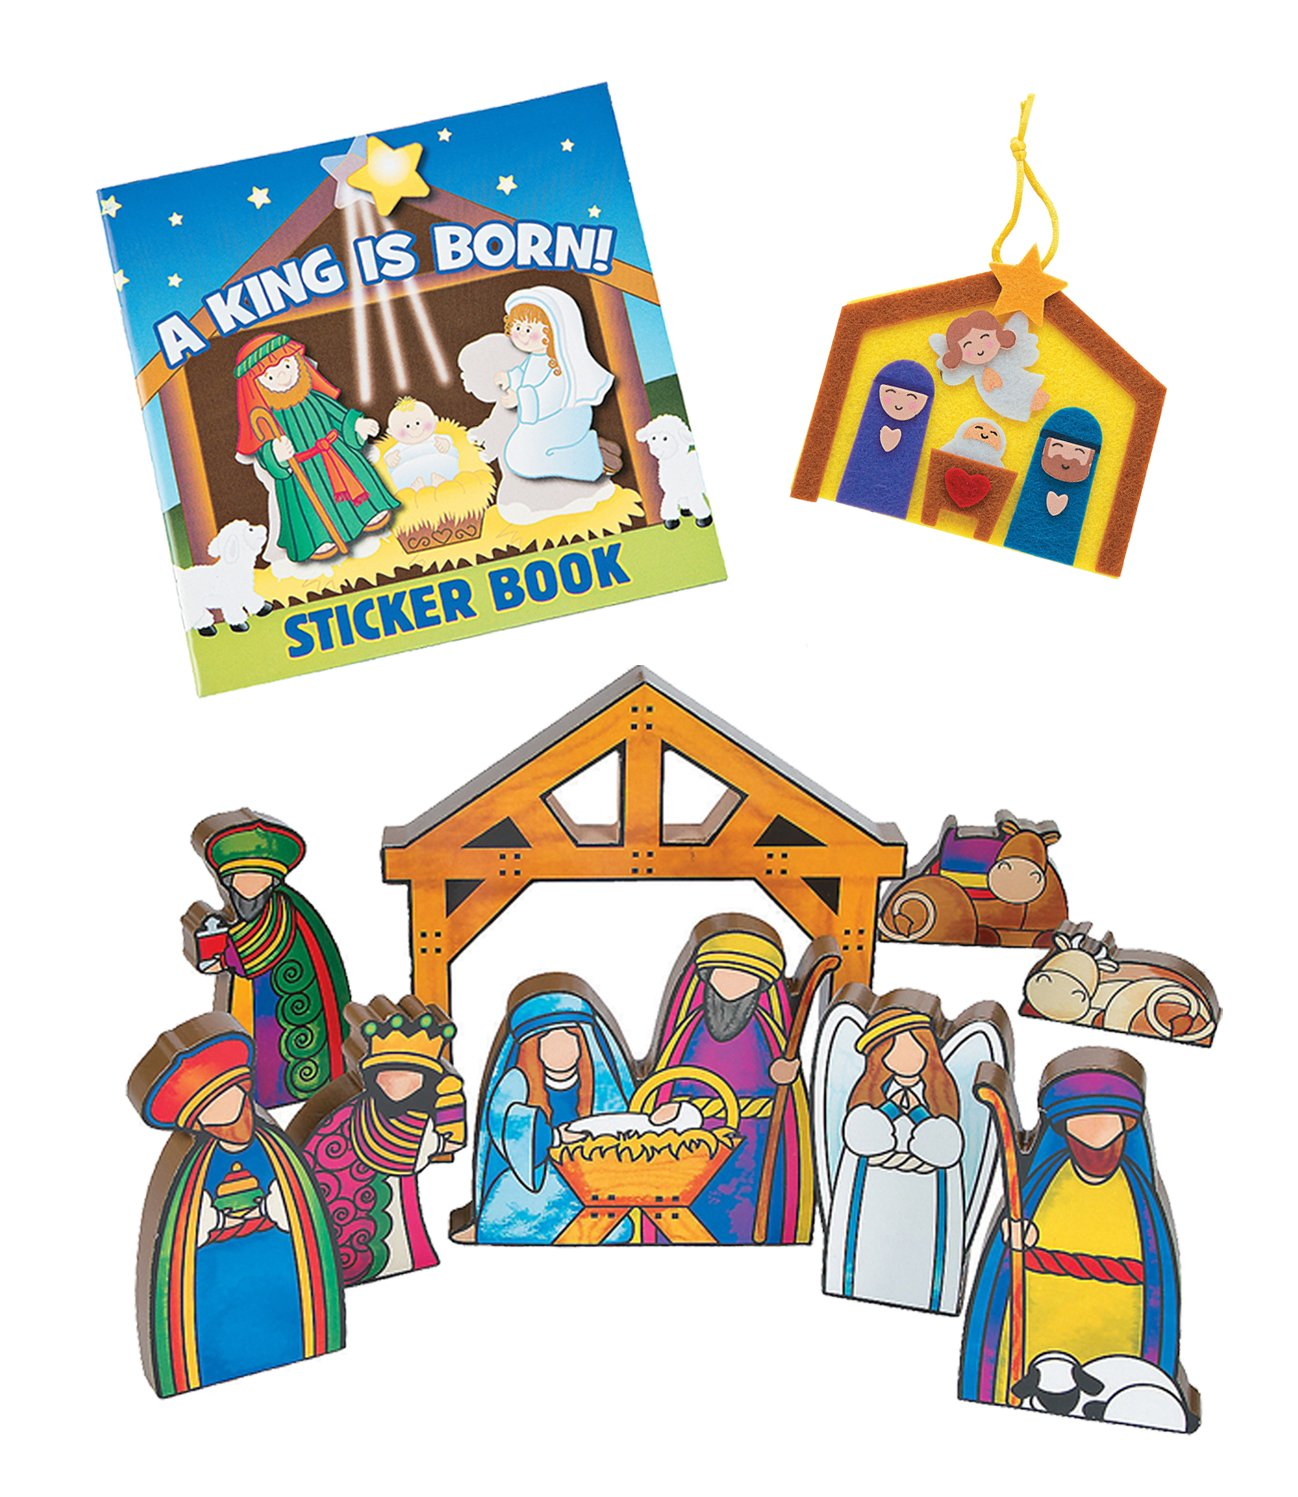 Children's Christmas Nativity Gift Set - Includes Wooden Nativity Set, Ornament Craft Kit and Nativity Sticker Book FX